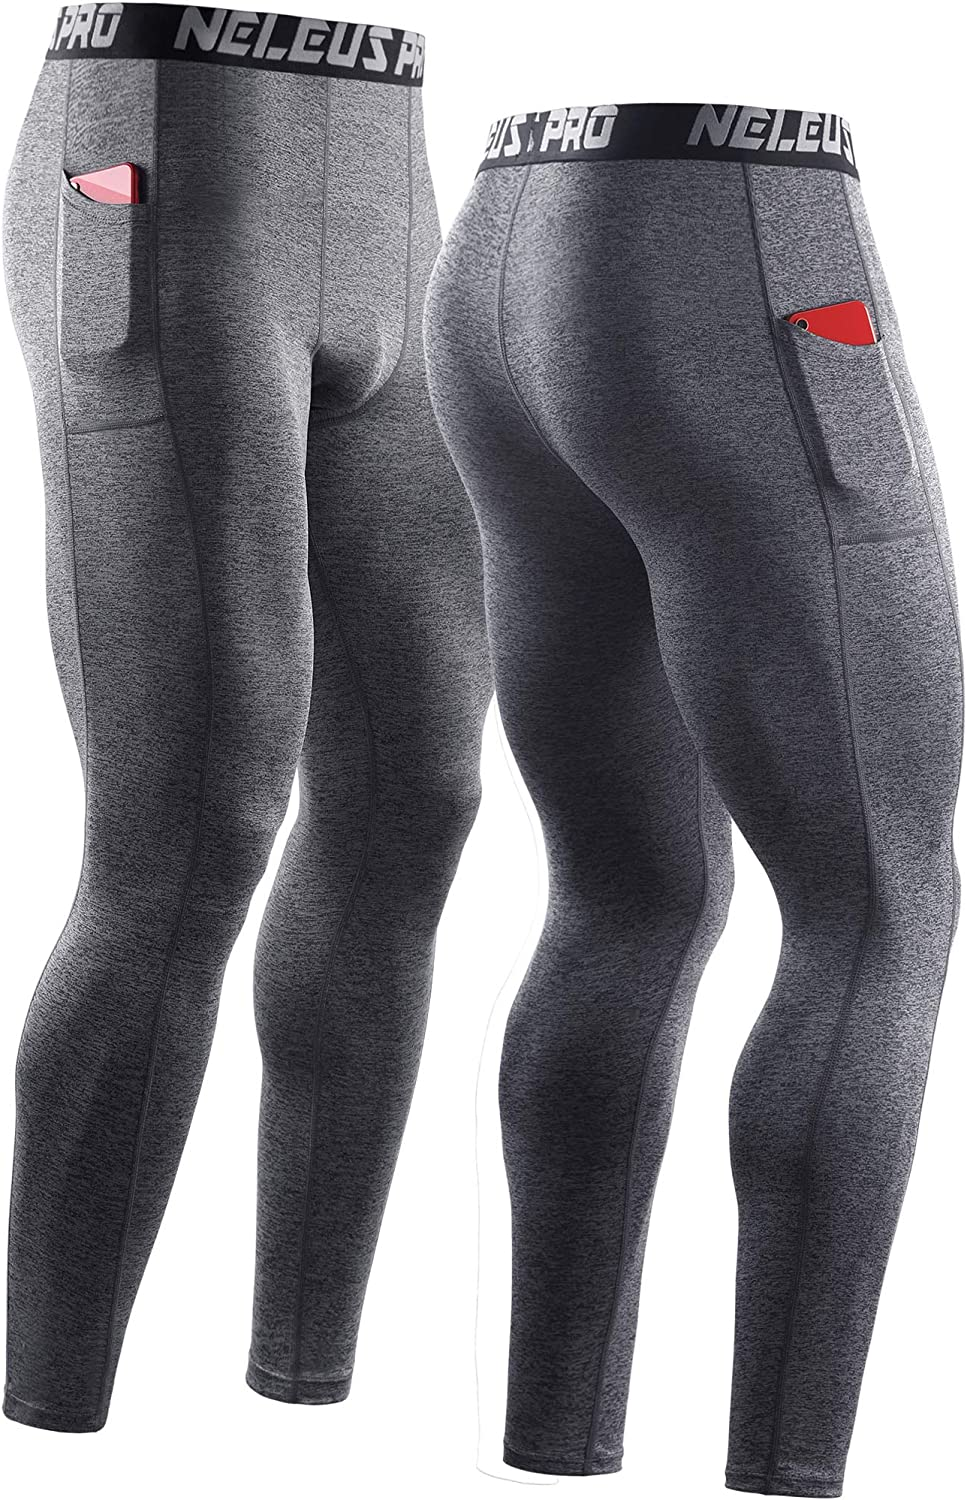 Neleus Mens Dry Fit Compression Baselayer Pants Running Tights Leggings with Phone Pocket